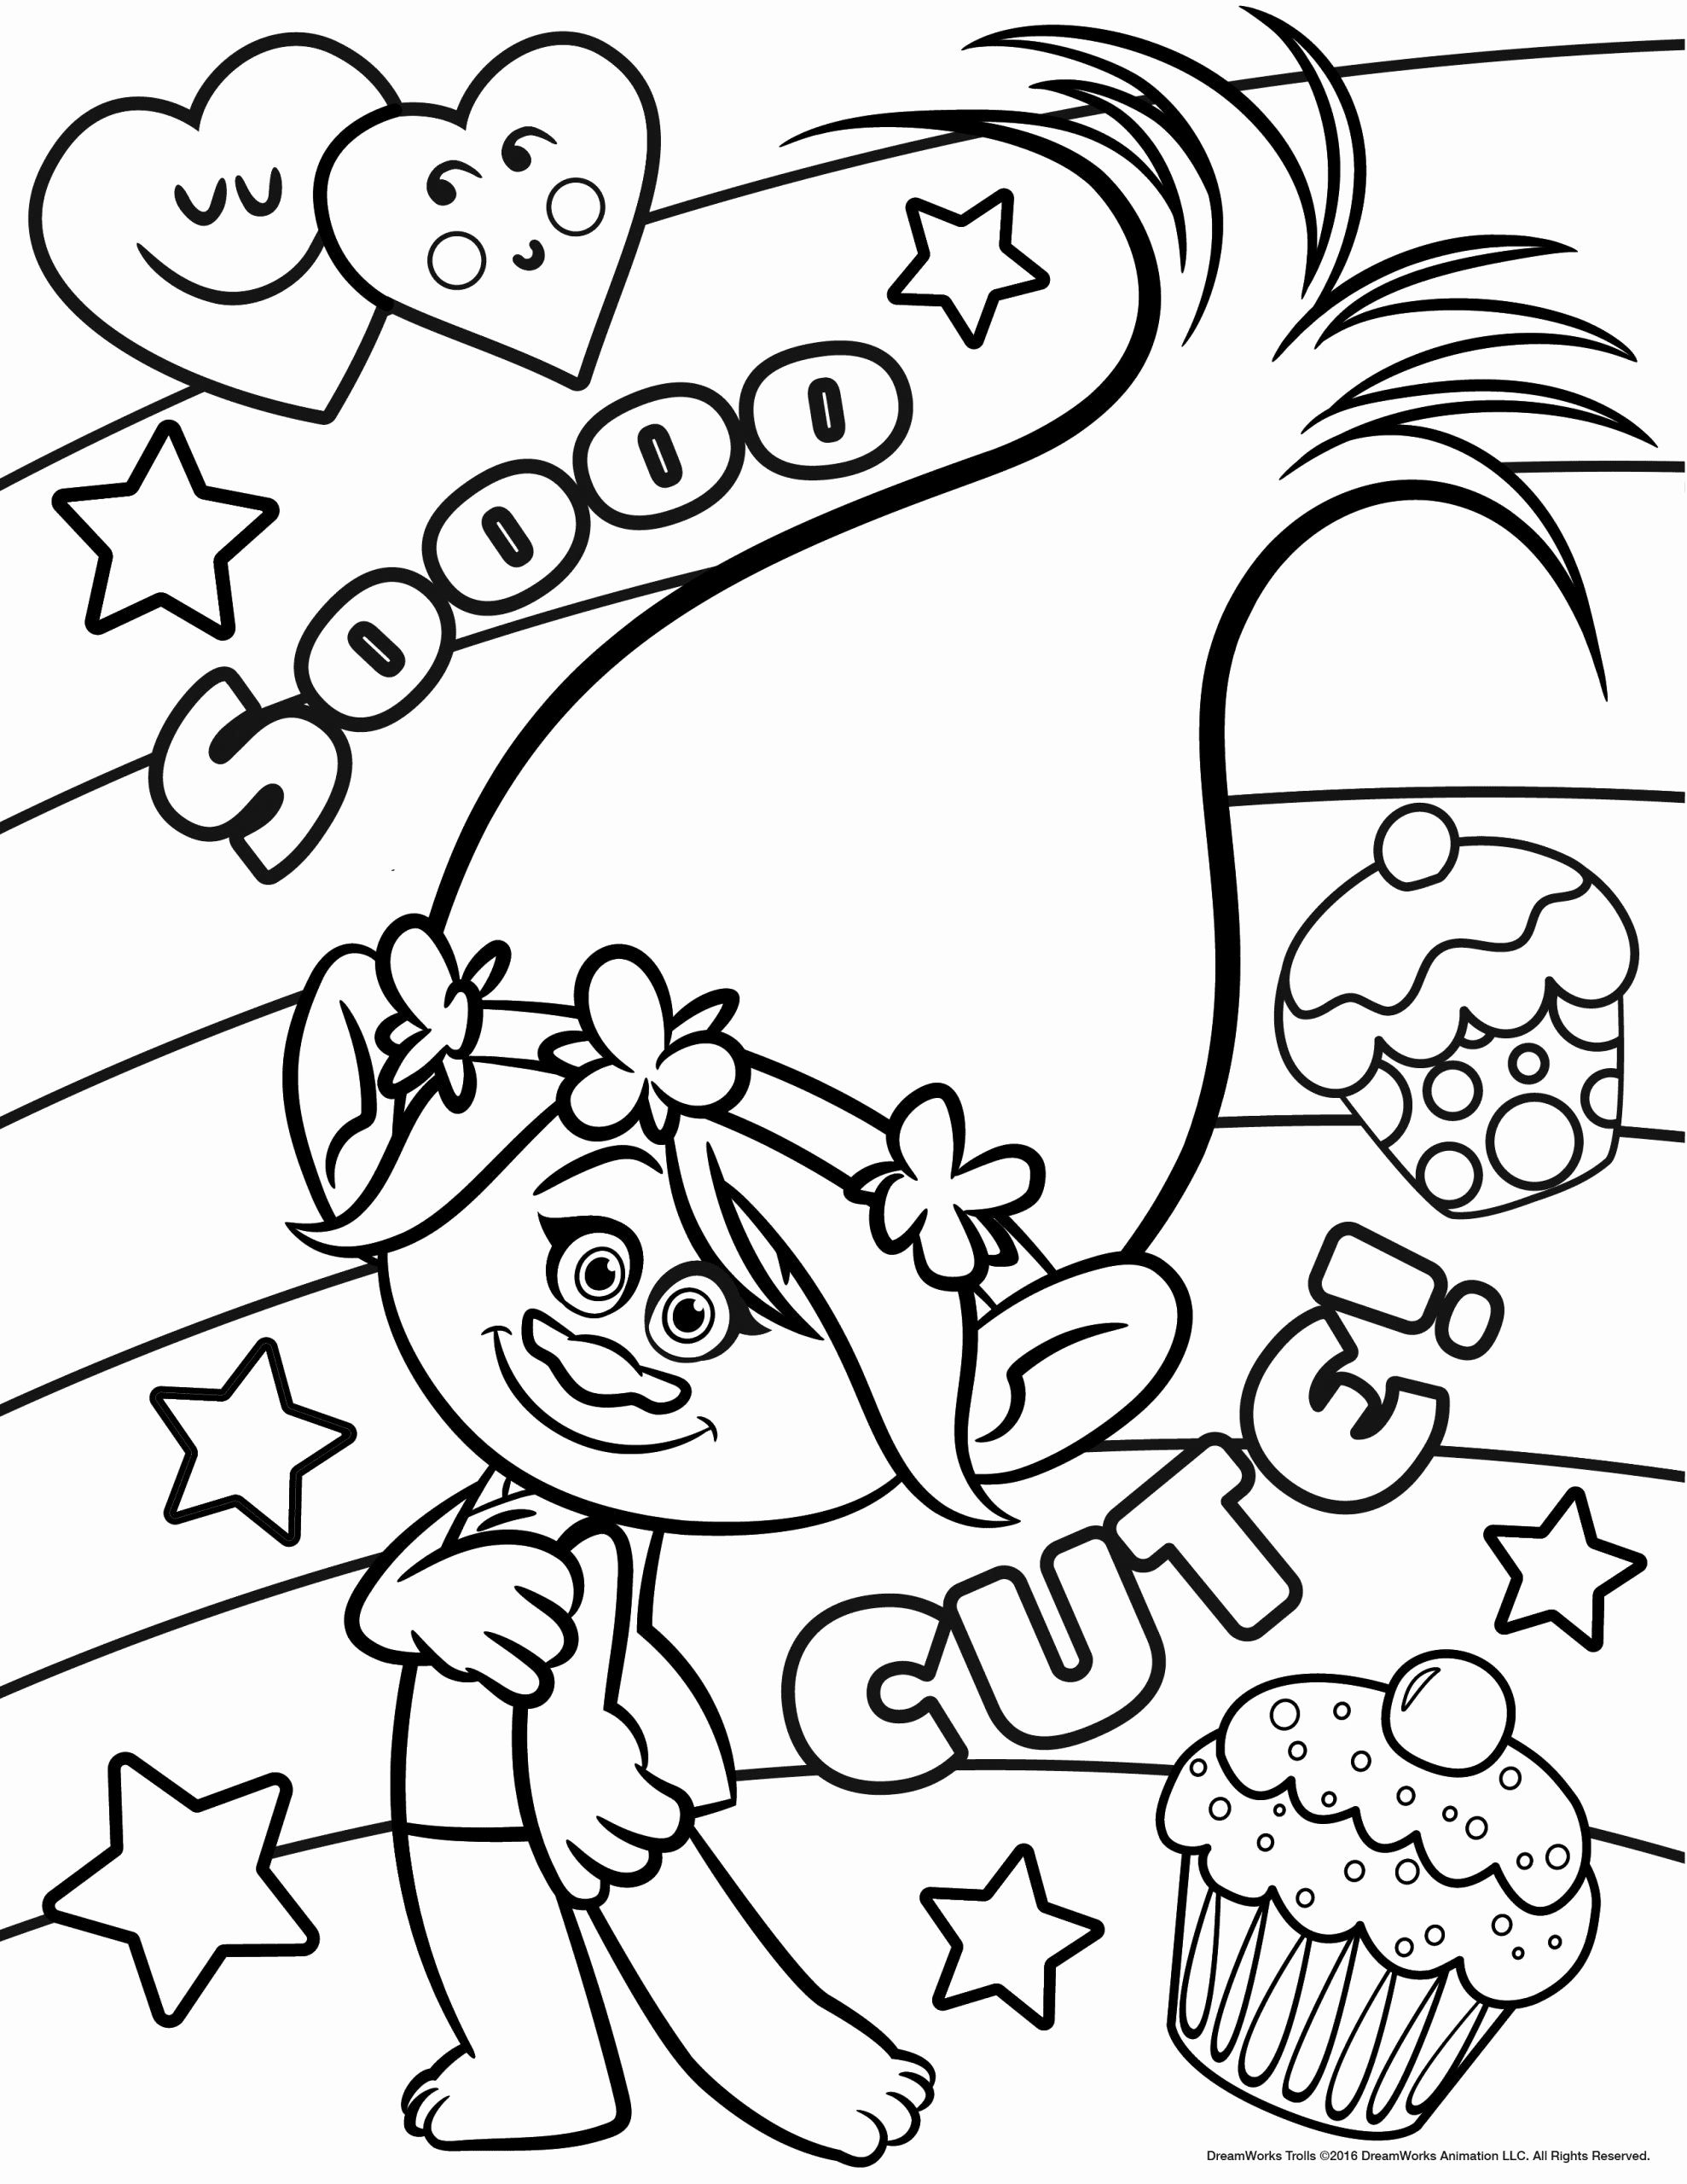 Summer Disney Kids Coloring Pages Poppy Coloring Page Disney Coloring Pages Free Disney Coloring Pages